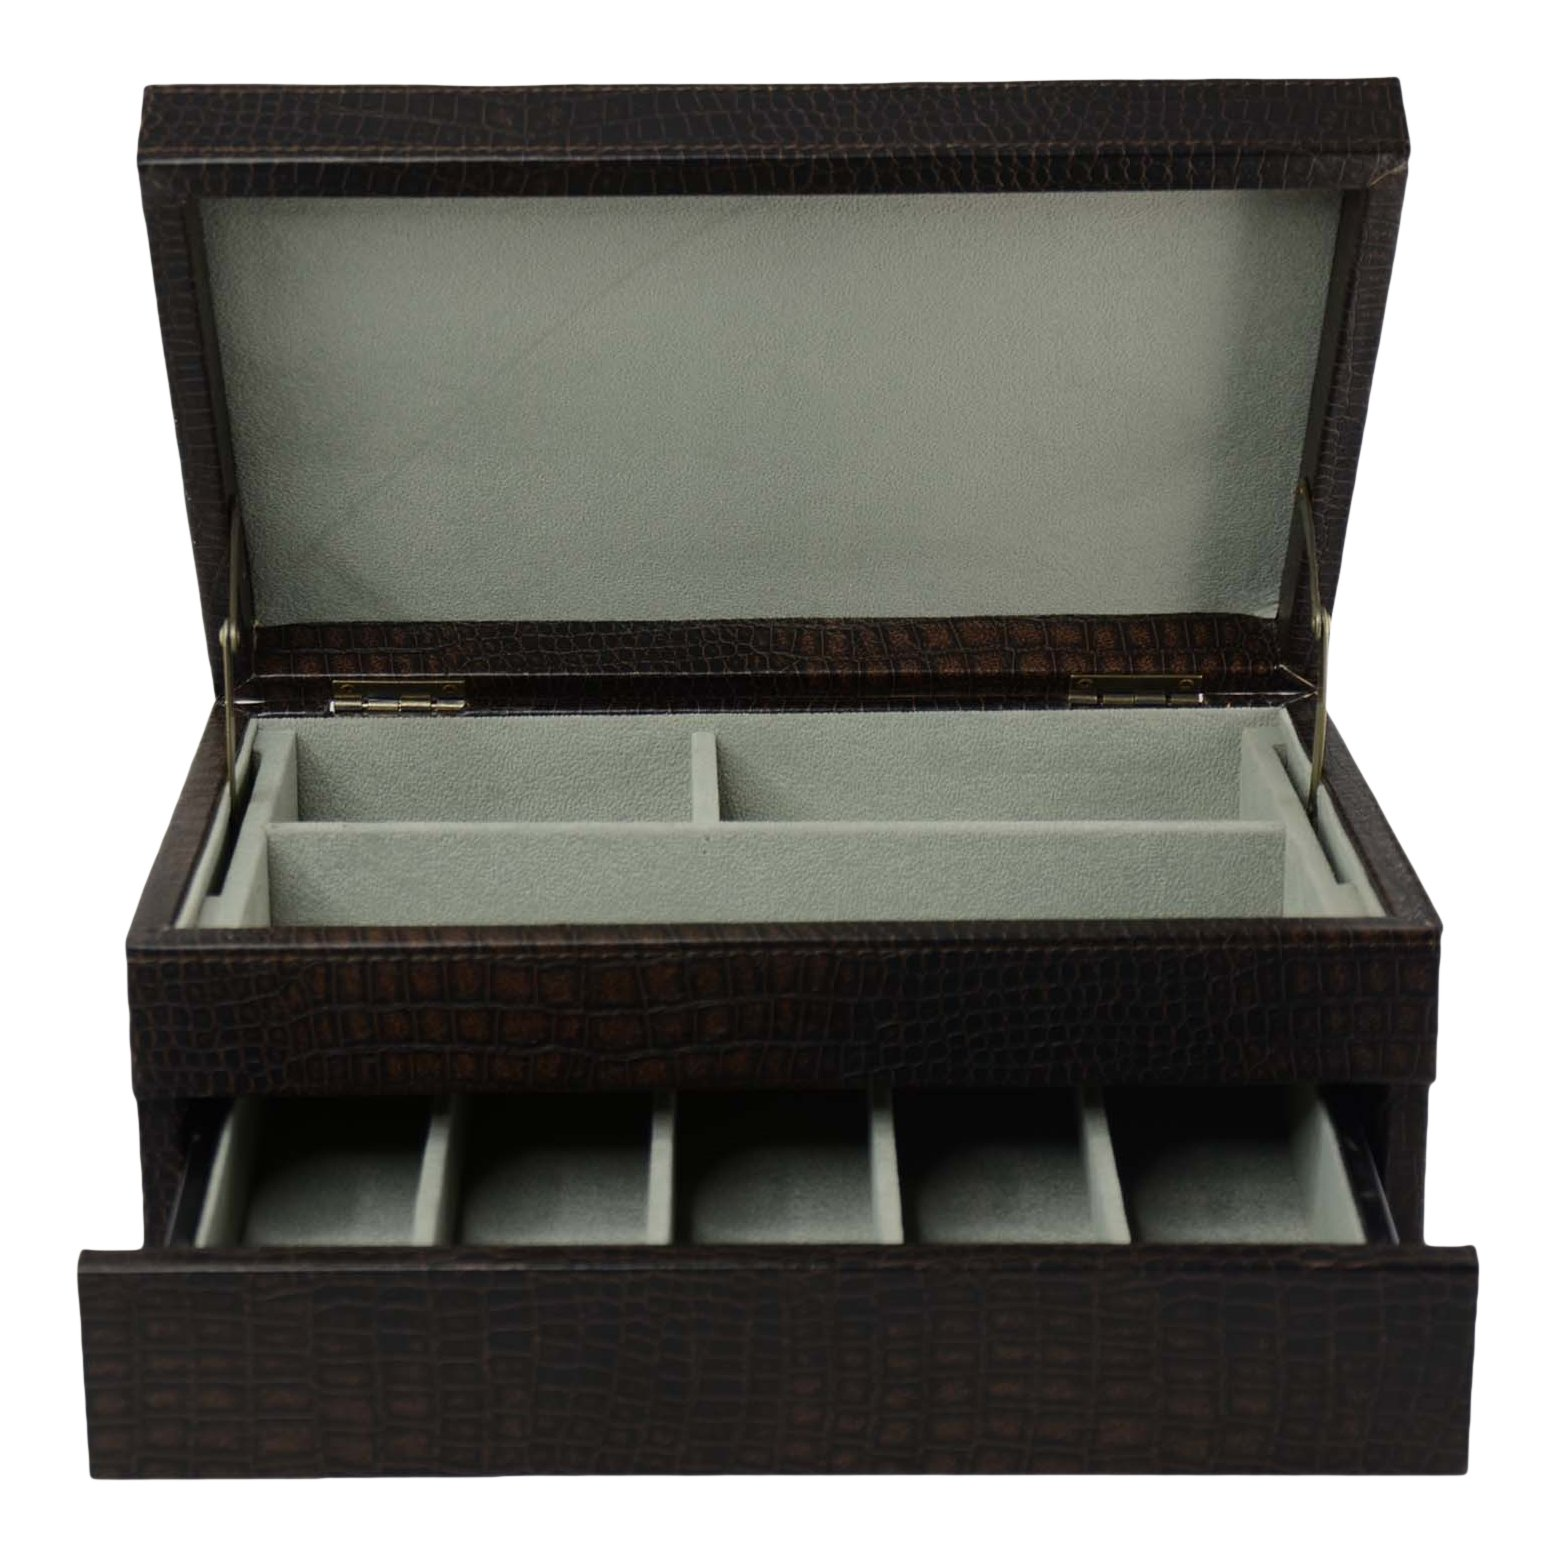 Top Quality Men's Black Leather Jewelry Box And Valet Storage Box Organizer by Bombay Brand (Image #1)